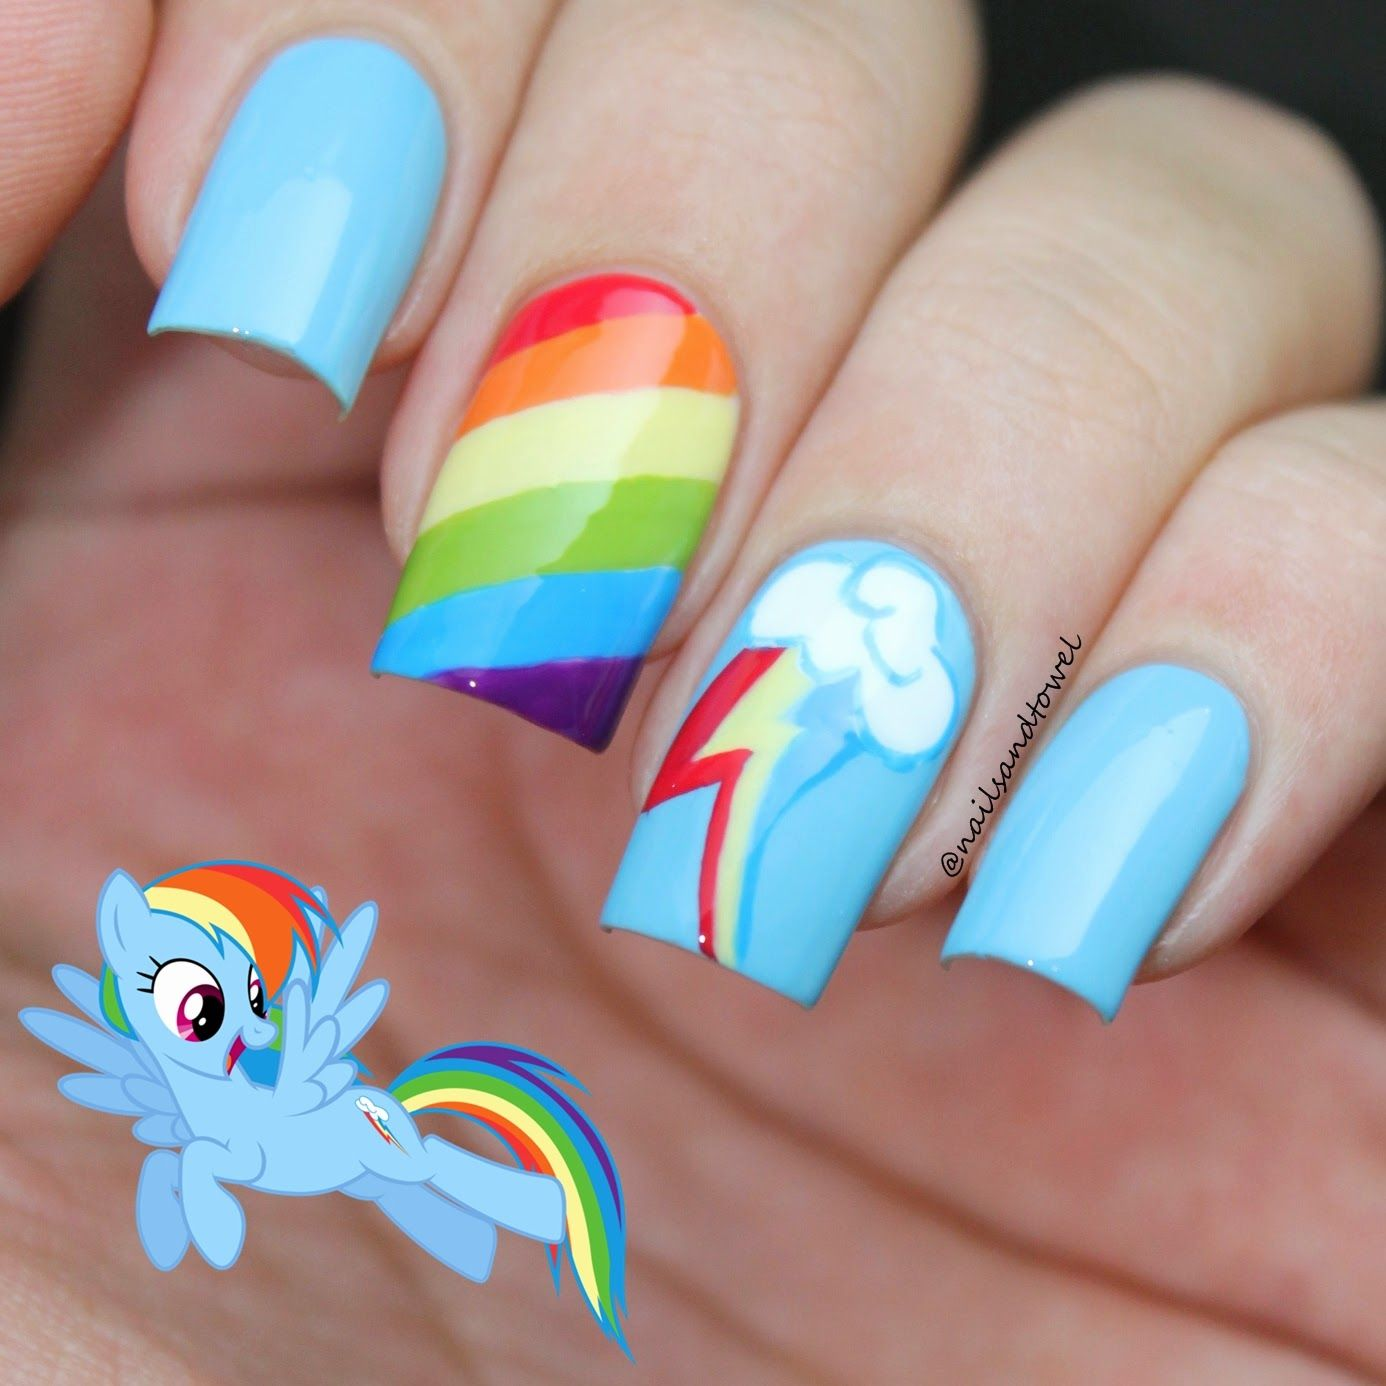 My Nail Art Journal My Little Pony Nails Inspired Nail Art